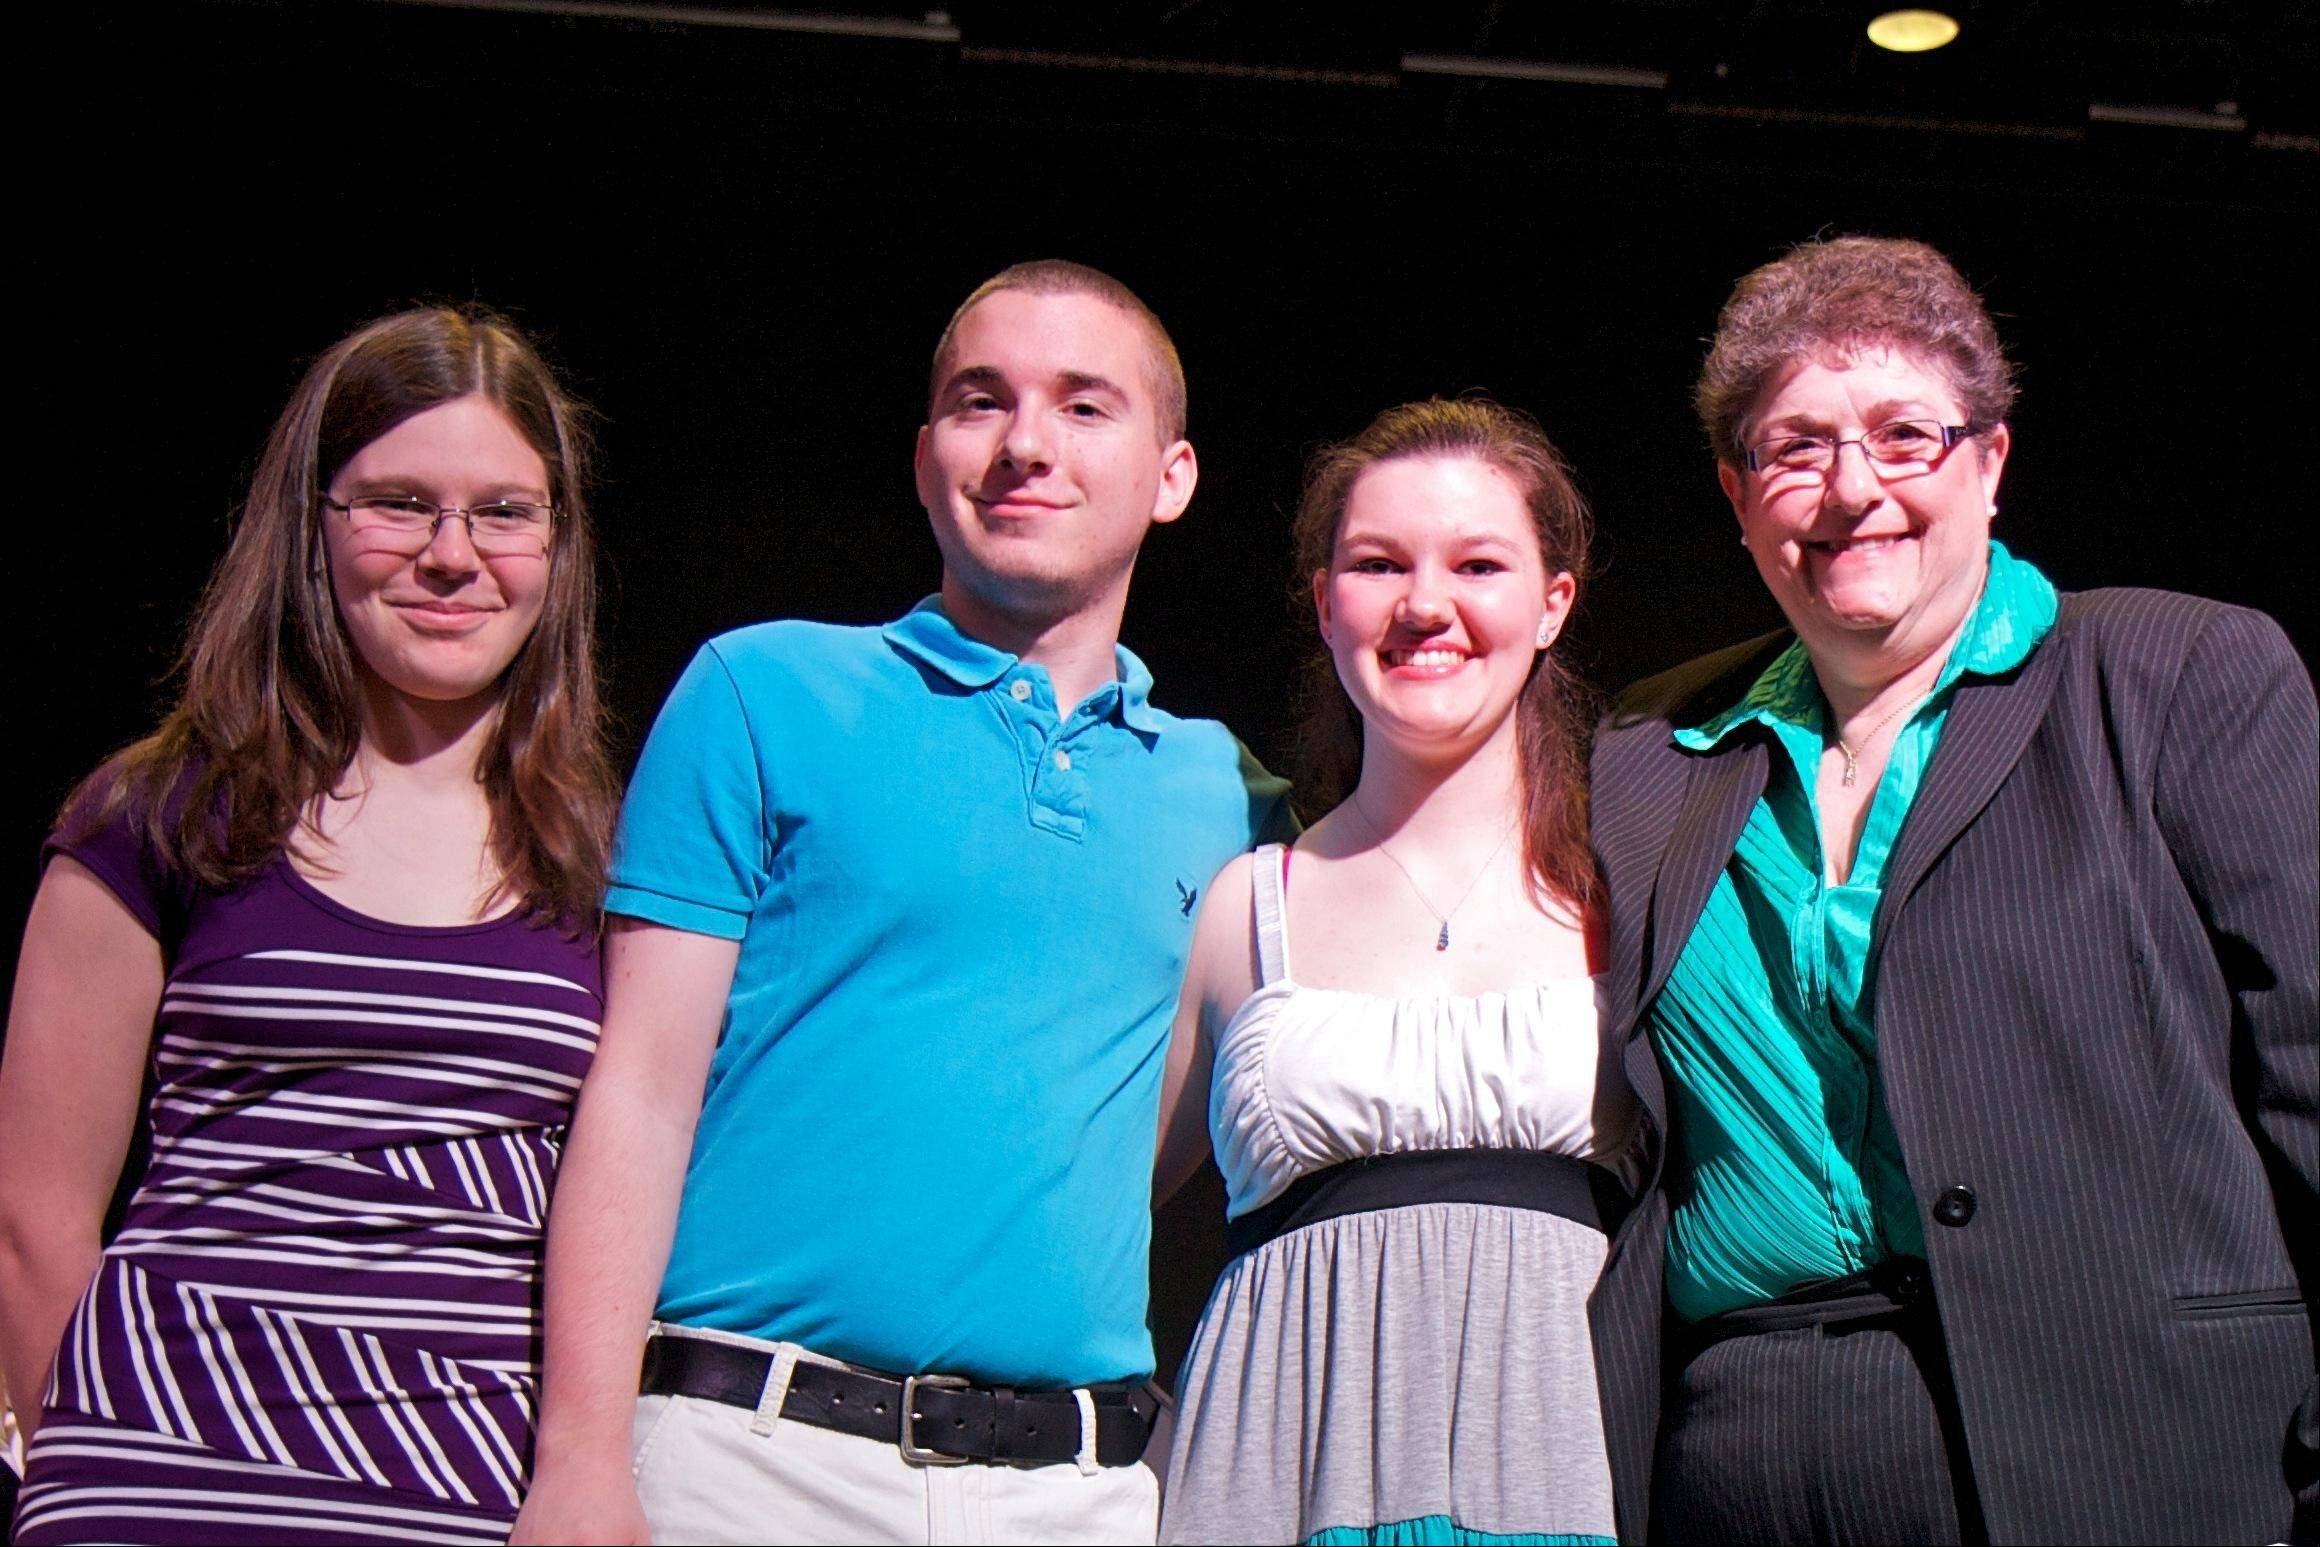 The Sun City Concert Band, with band director Donna Bressler, right, recently awarded instrumental music scholarships to three Huntley High schools, from left, Charlotte Skala, Pierce Cordel and Zoe Detlof.